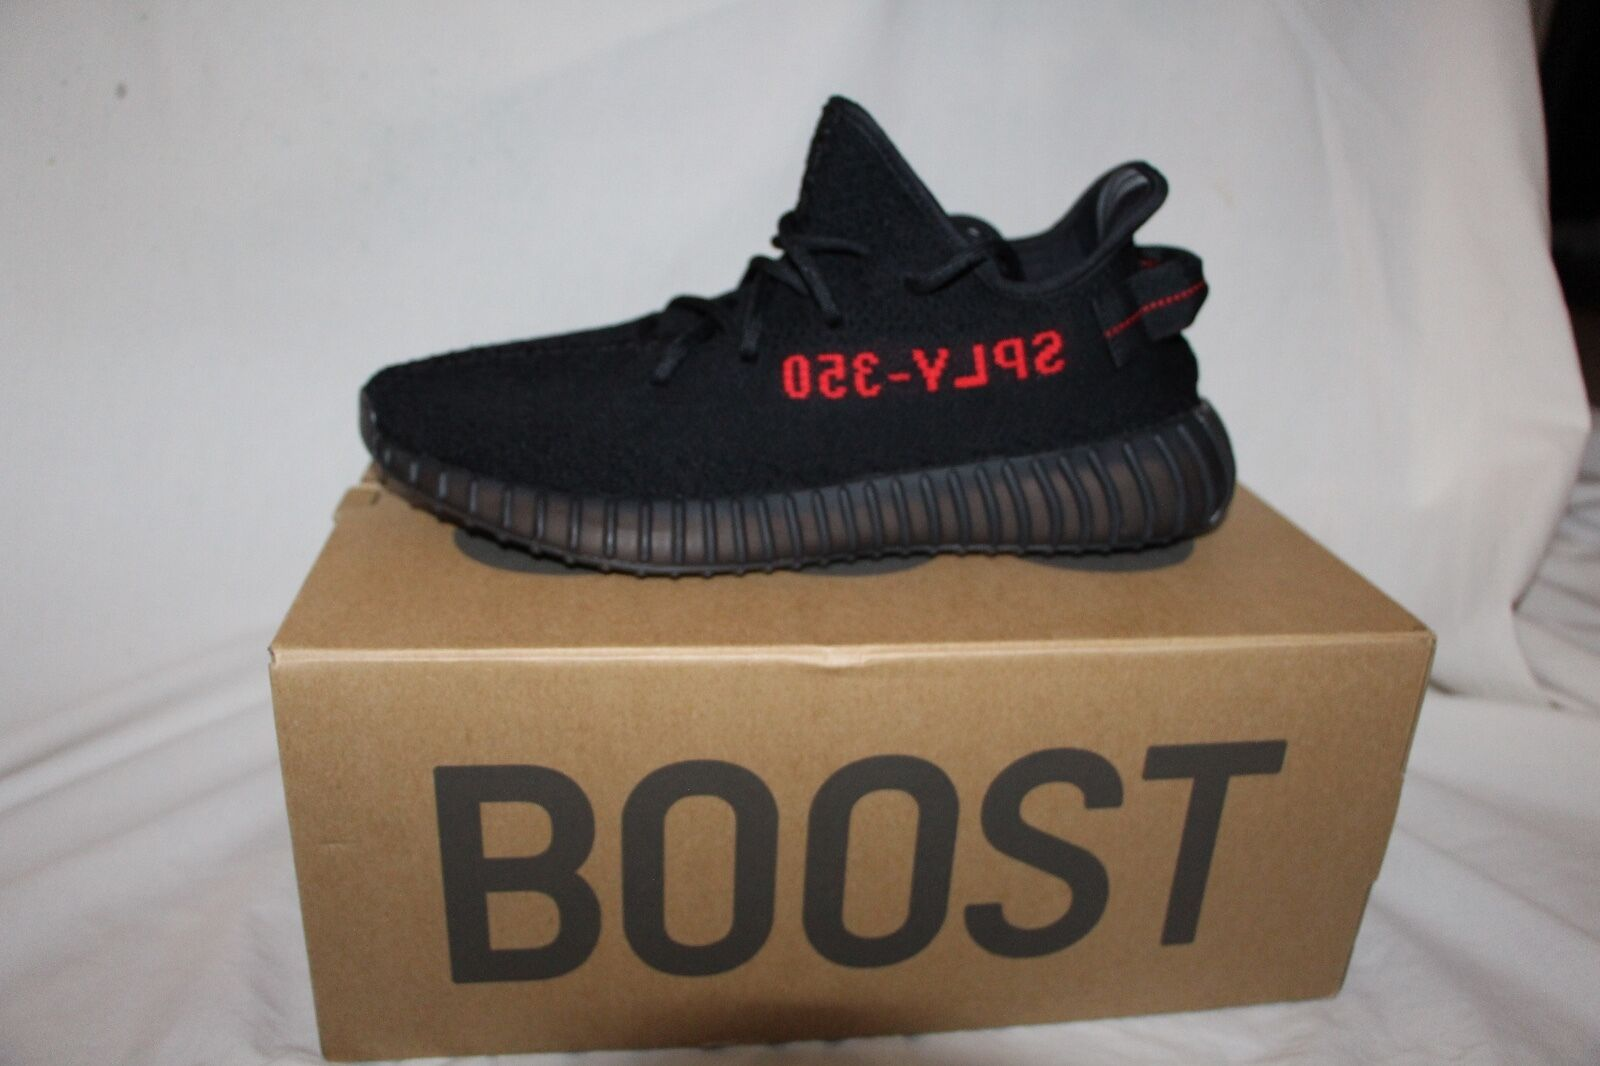 Men's yeezy boost boost boost bred size 9.5 6a4e6f